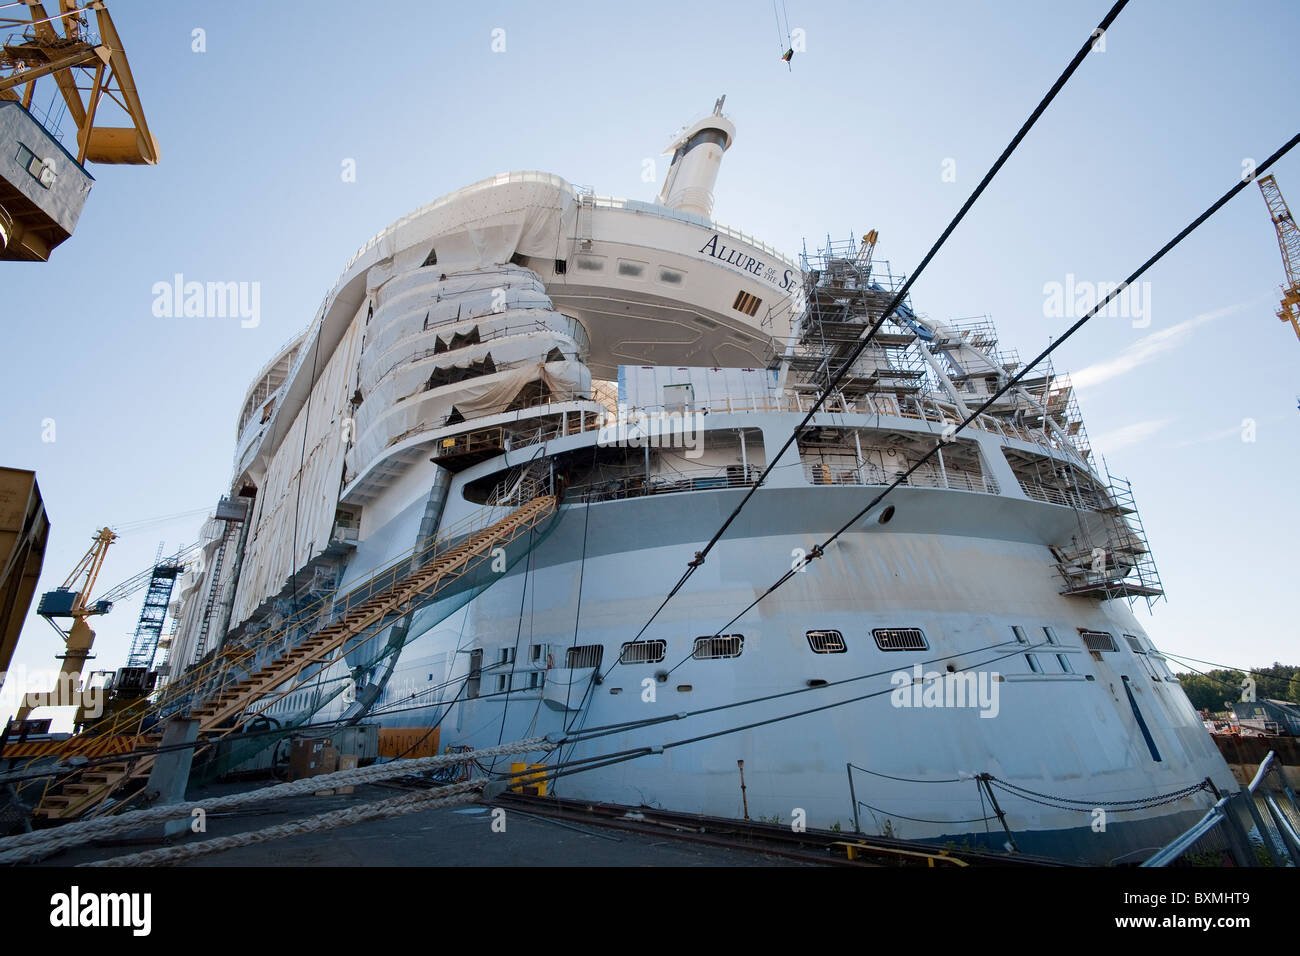 M/V Allure of the Seas under construction at STX Finland. - Stock Image